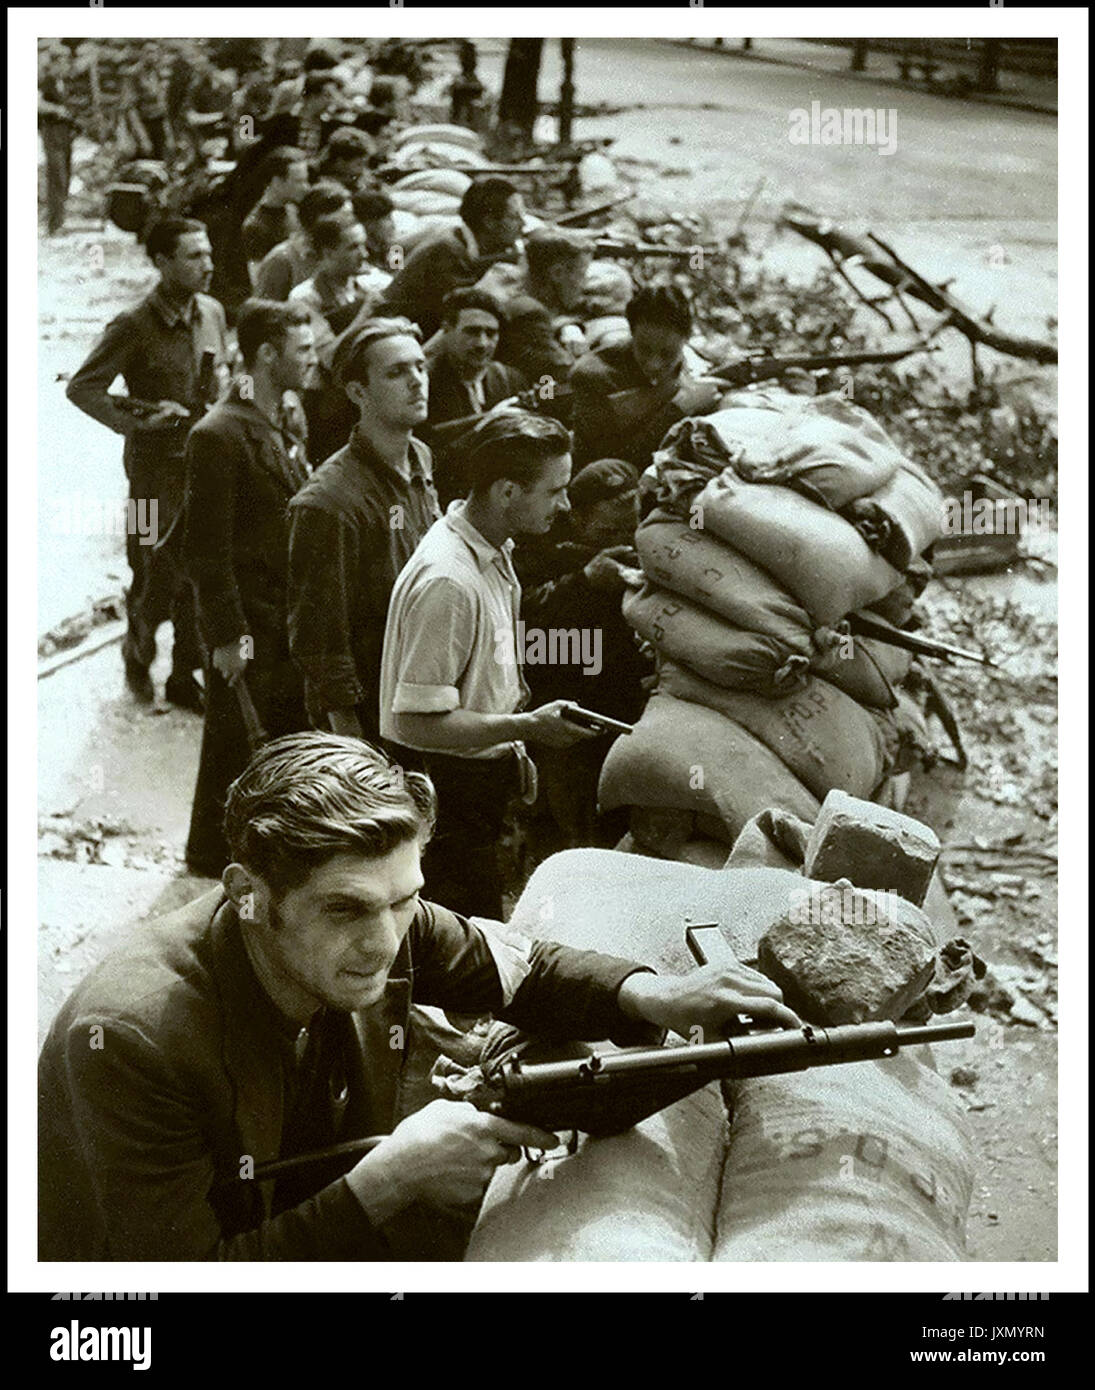 the french resistance during world war ii Resistance and opposition during world war ii: germany, france and the united states  specialist in world war ii literature and film and author of when paris went dark: the city of light under.